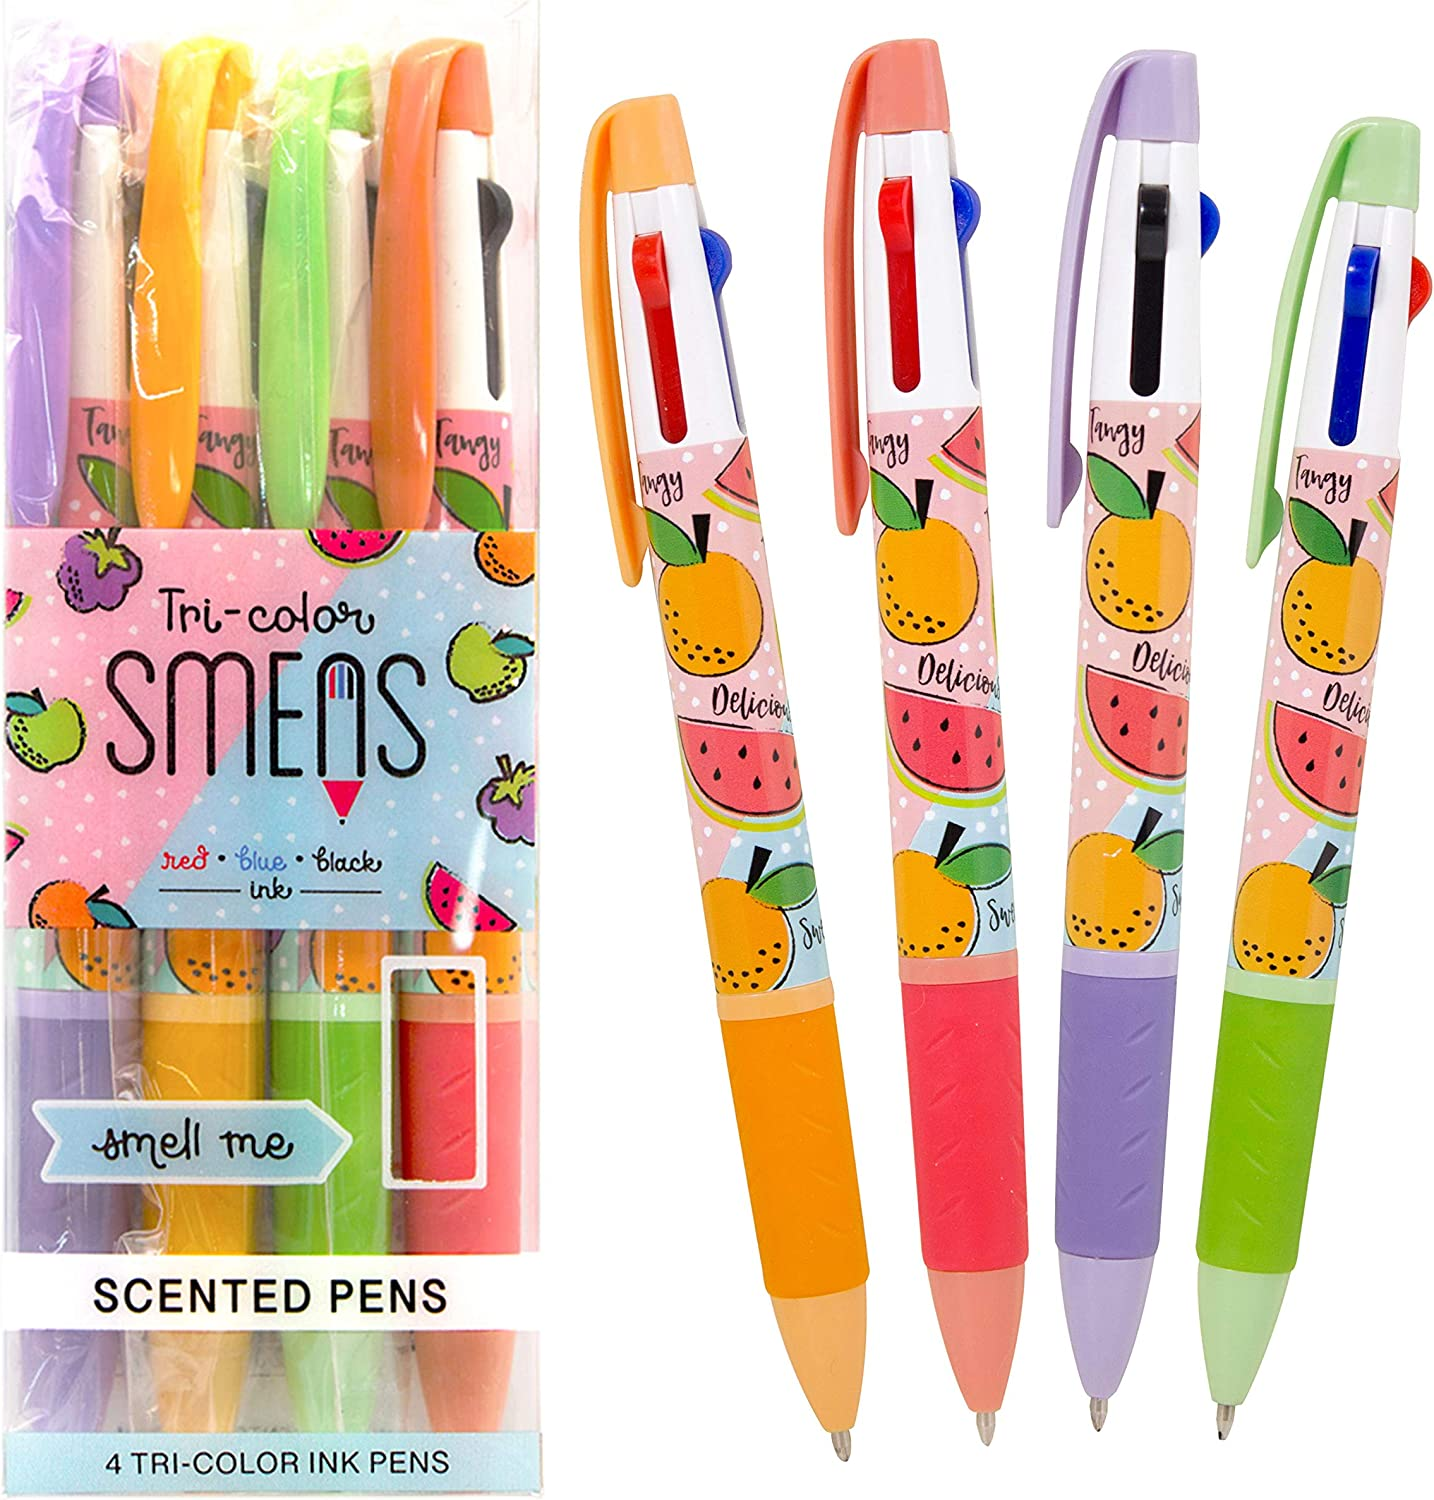 Tri-Color Smens- Scented Pens 4 Count National Regular store products by Scentco